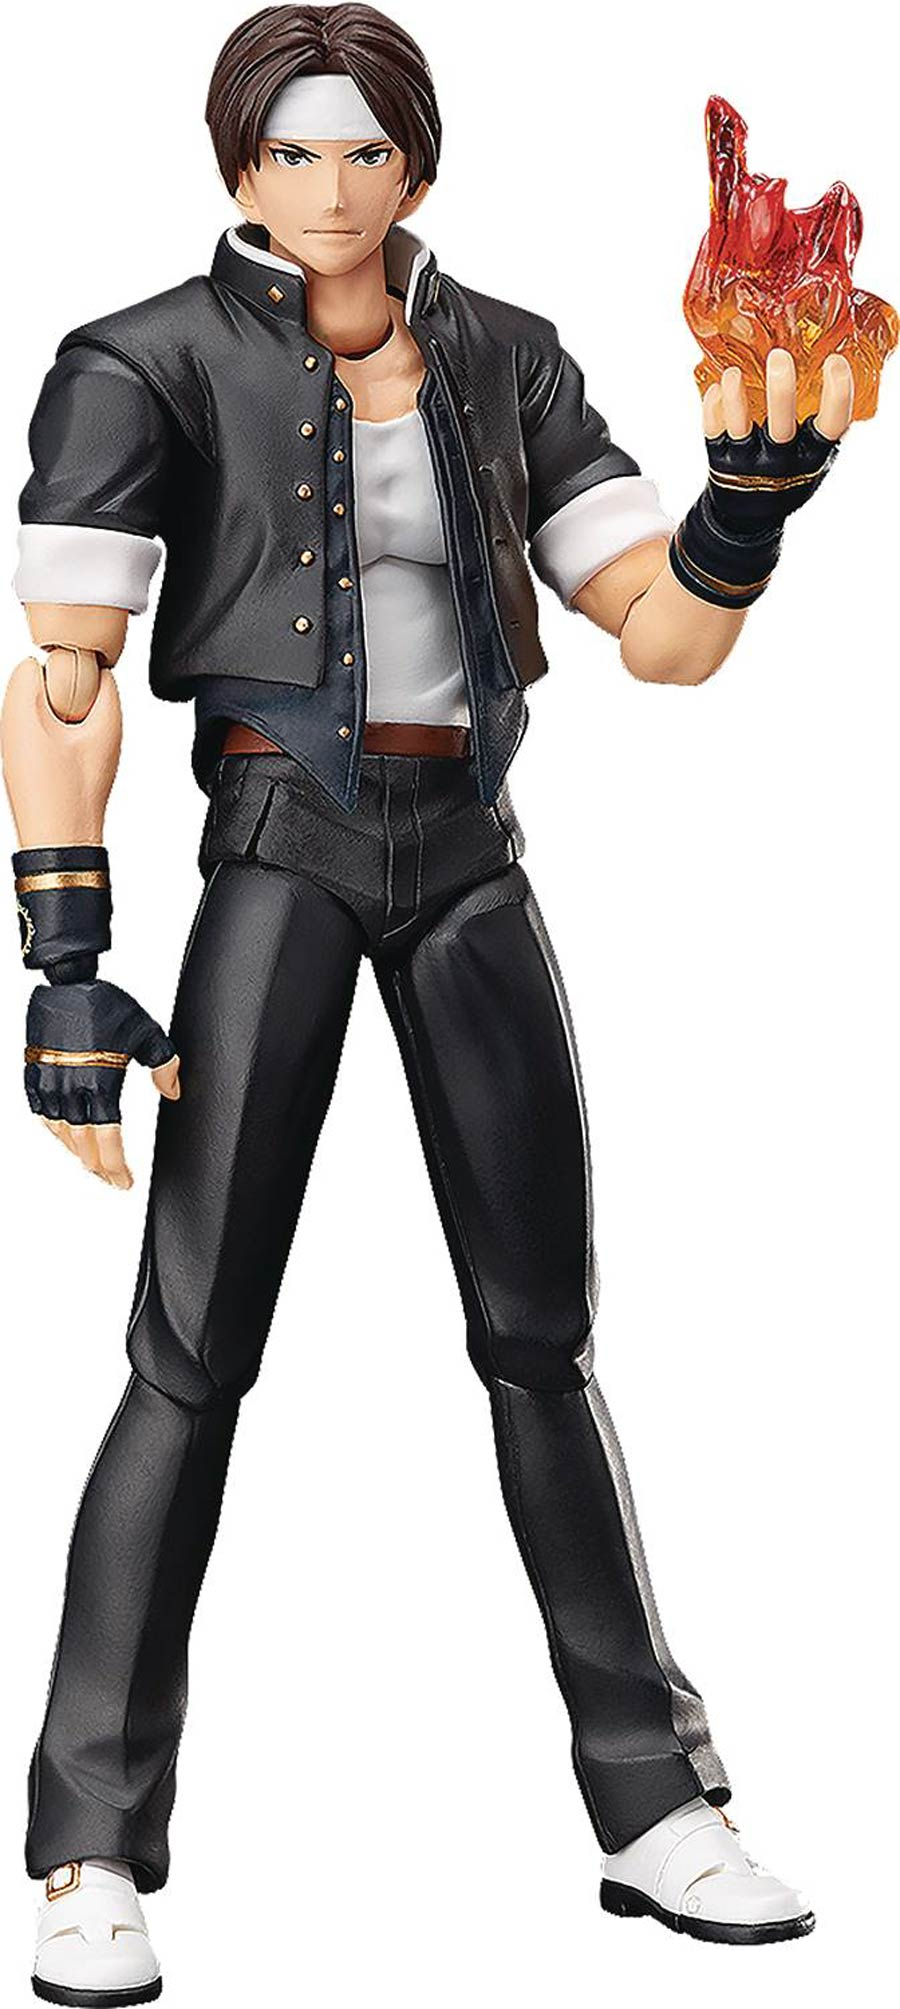 King Of Fighters 98 Ultimate Match Kyo Kusanagi Figma Action Figure